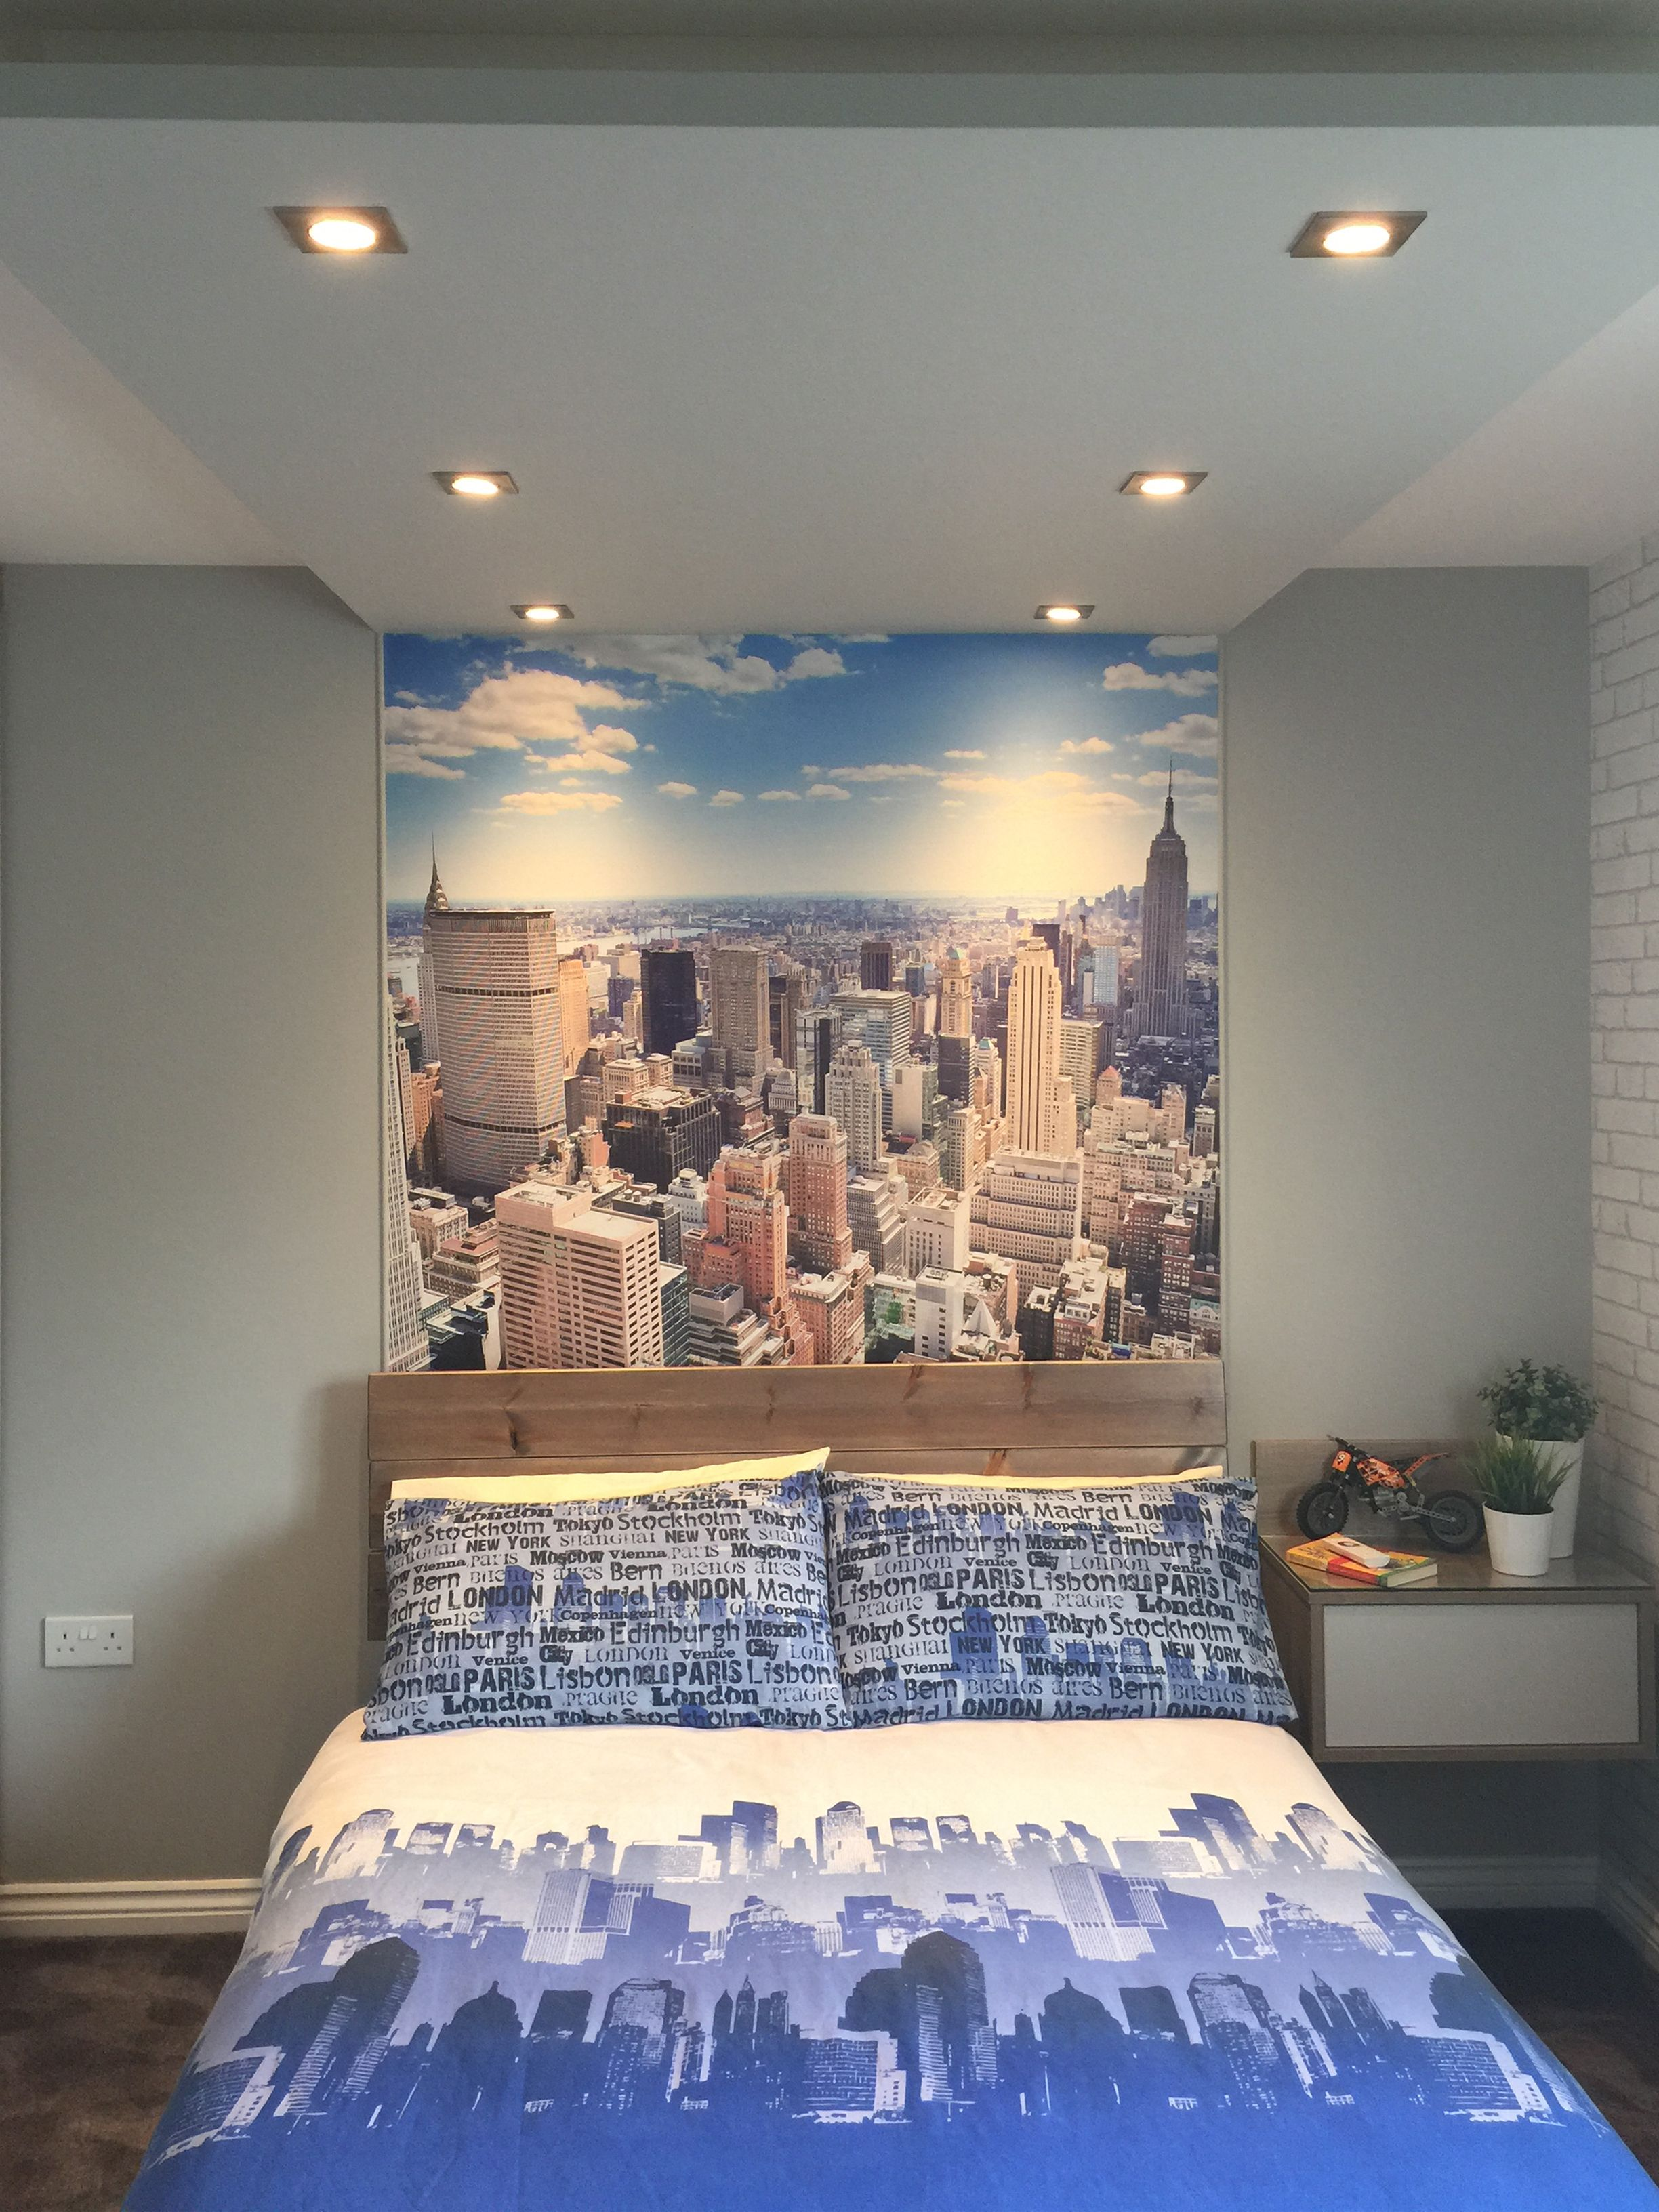 Sunny New York Wallpaper Mural City Bedroom City Theme Bedrooms